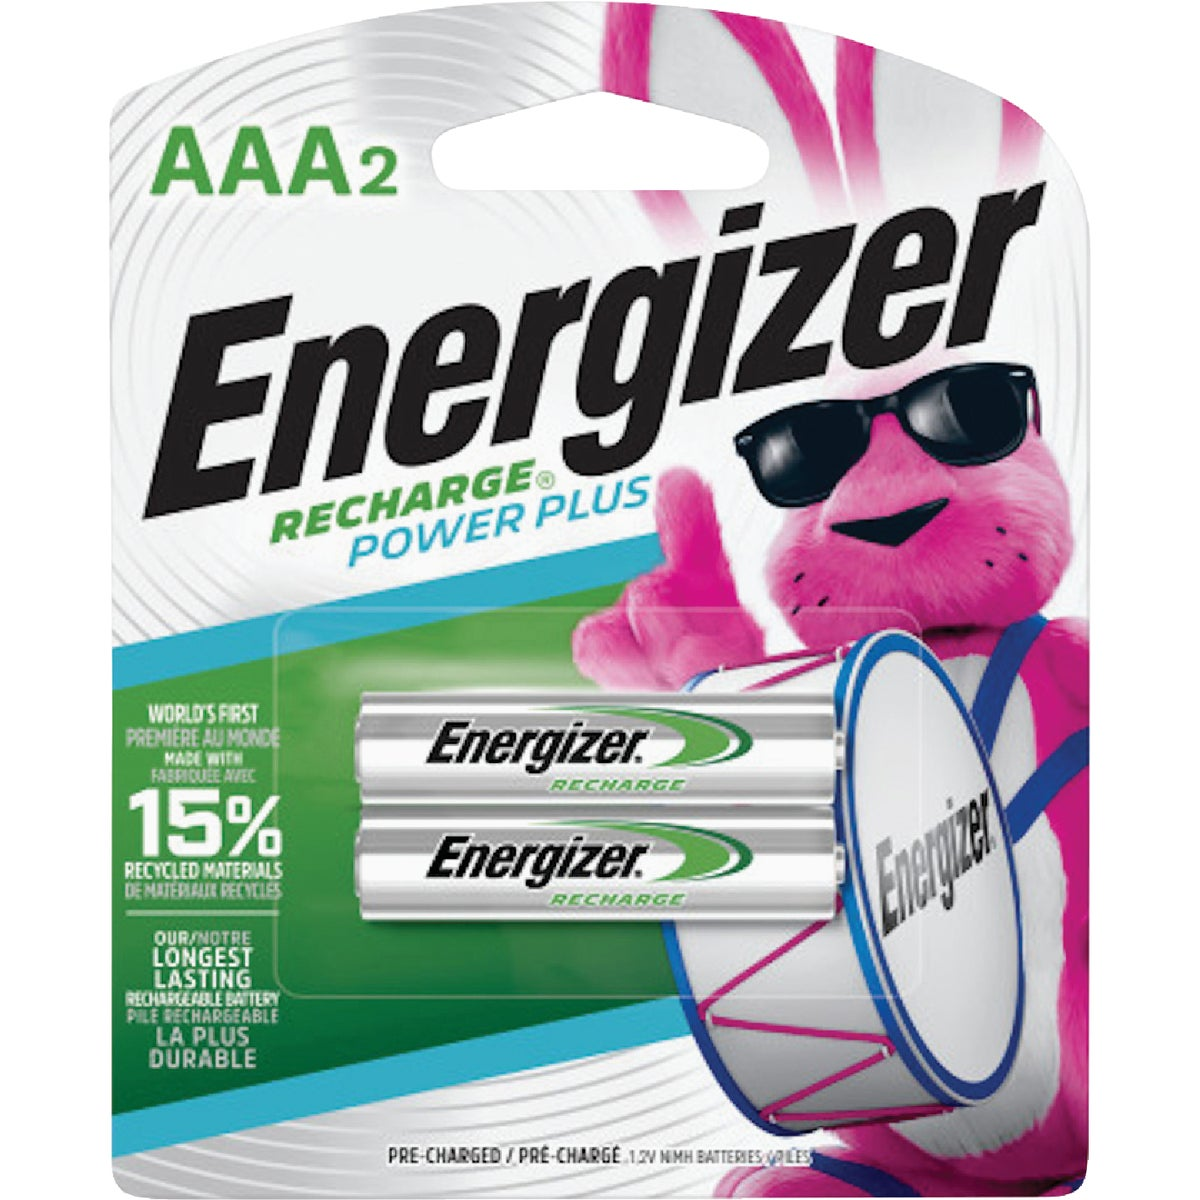 2CD AAA RECHARGE BATTERY - NH12BP-2 by Energizer